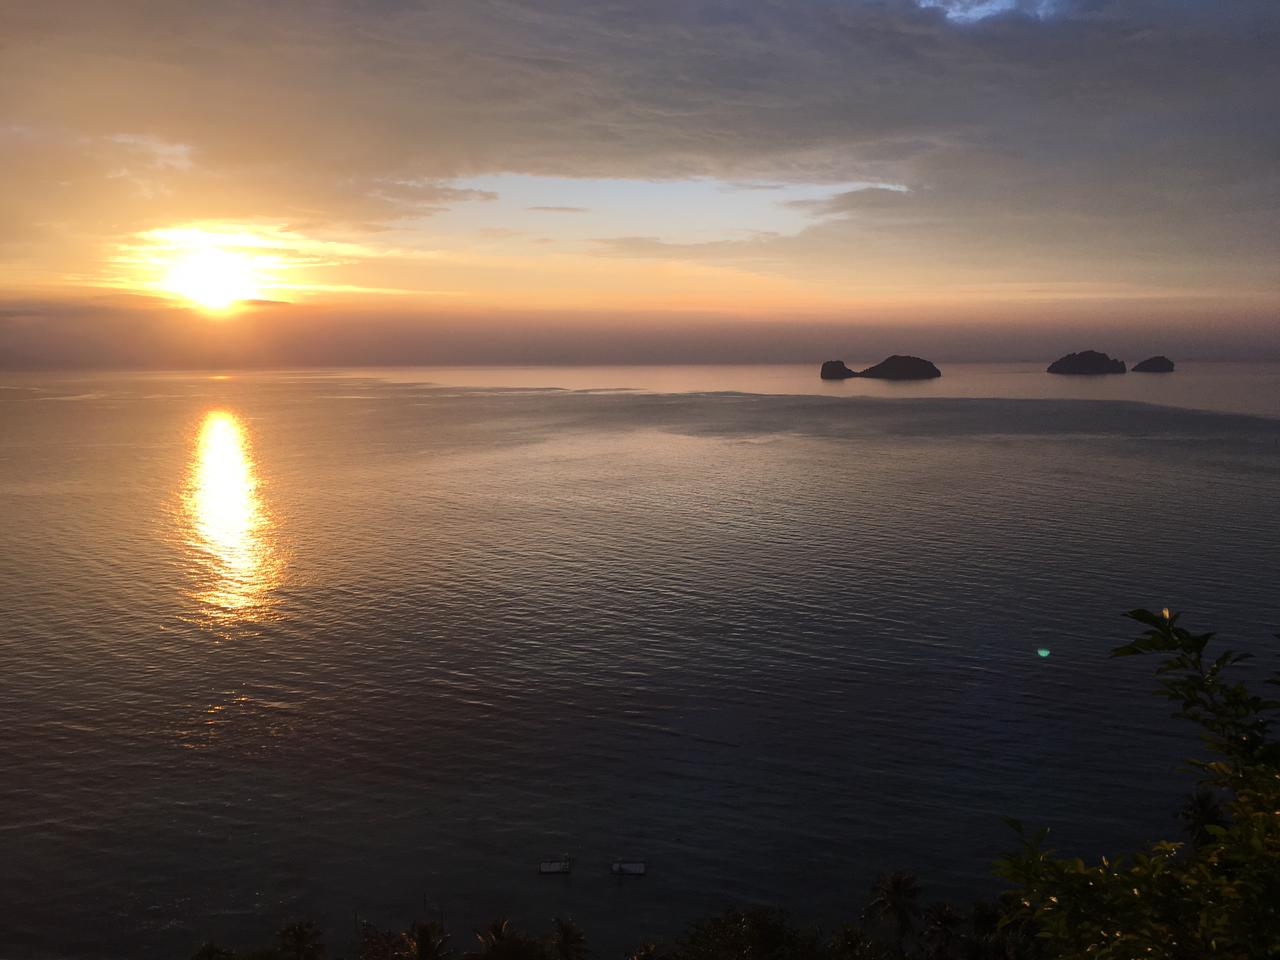 Koh Samui Sunset 3